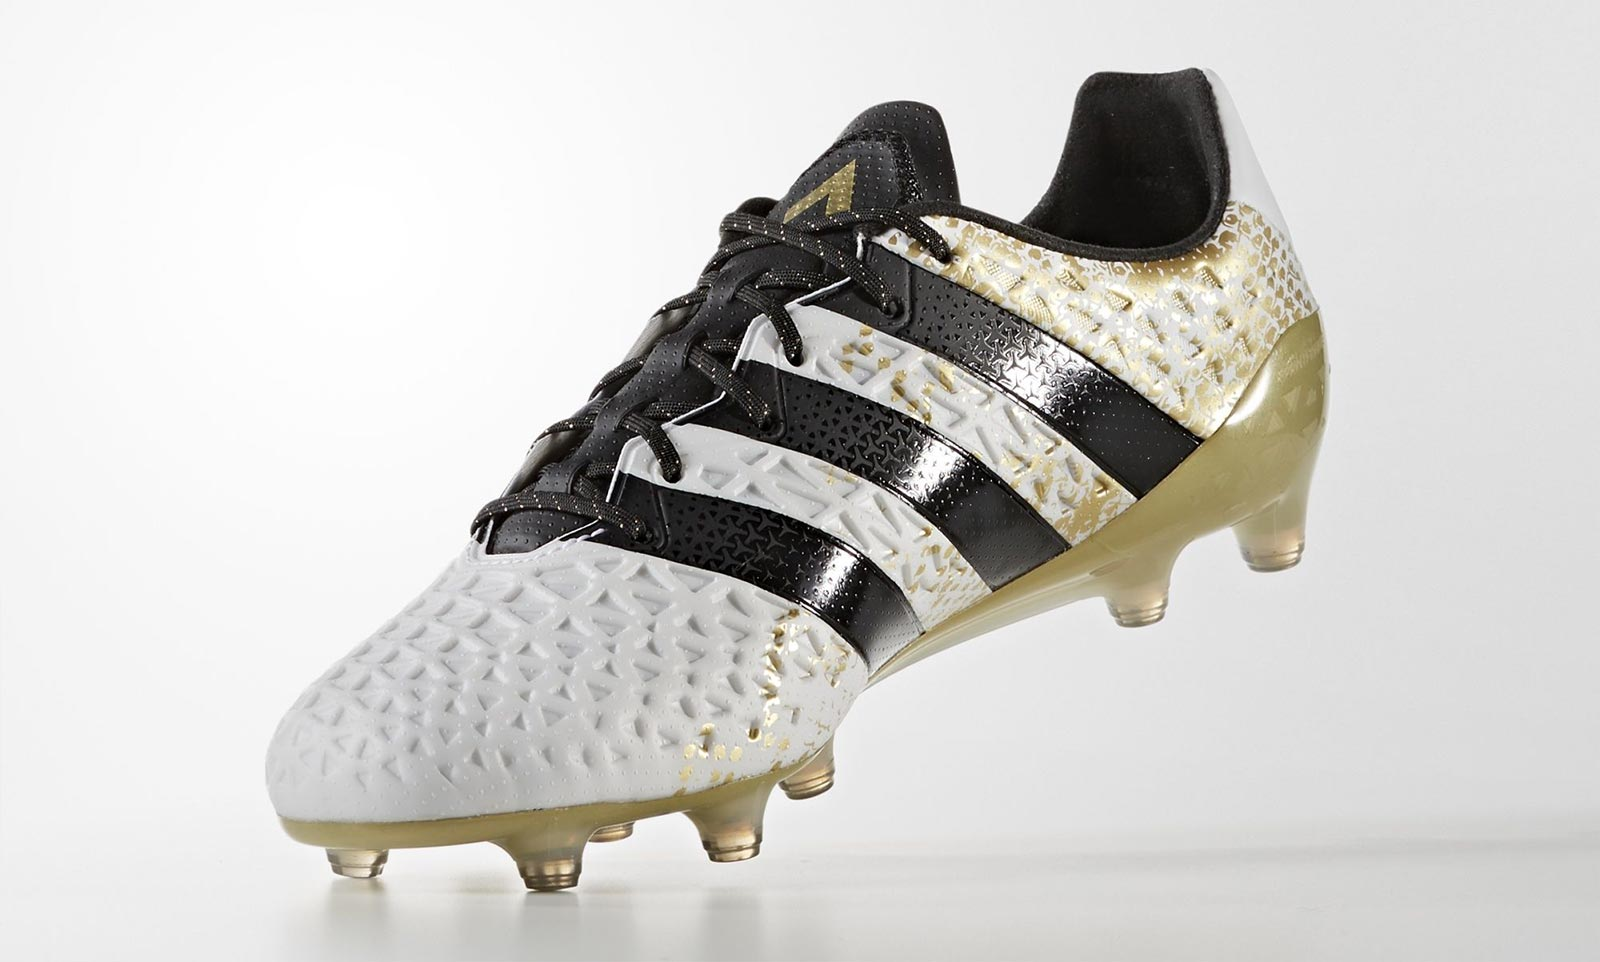 fdc63110de63 Adidas Will Discontinue Two Adidas Ace Versions - Classy Last-Ever ...